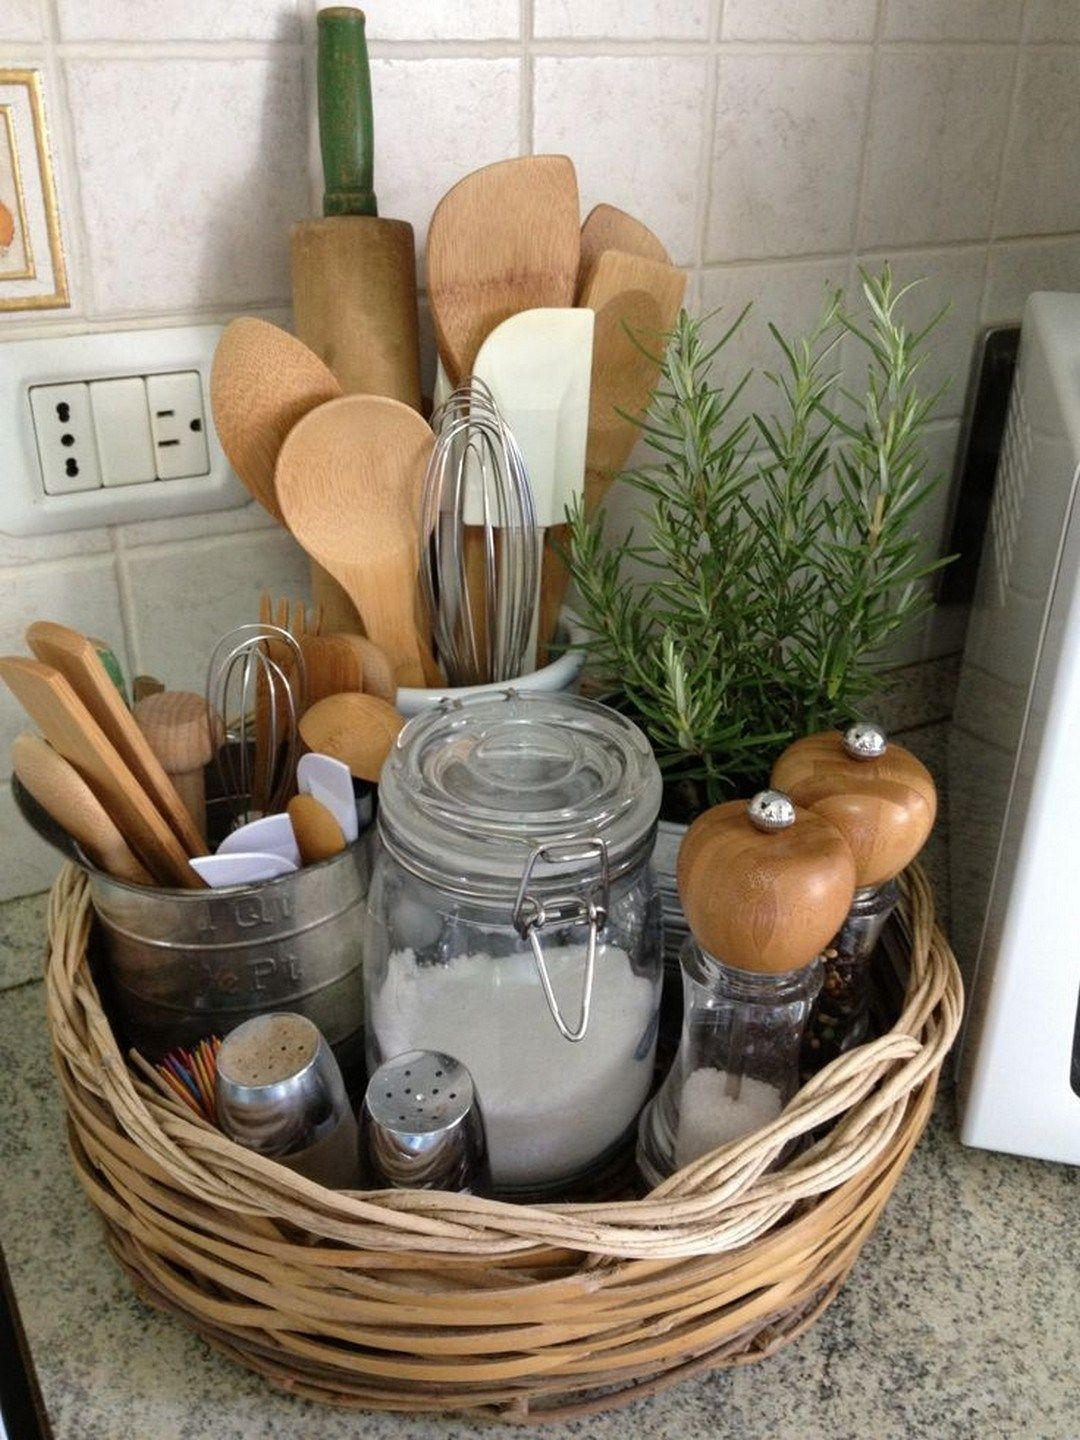 pleasing rv cabinet organizers. Camper Decorating Ideas 50 Gorgeous Photos  39 Diy Storage For KitchenDiy 50th Rv and living